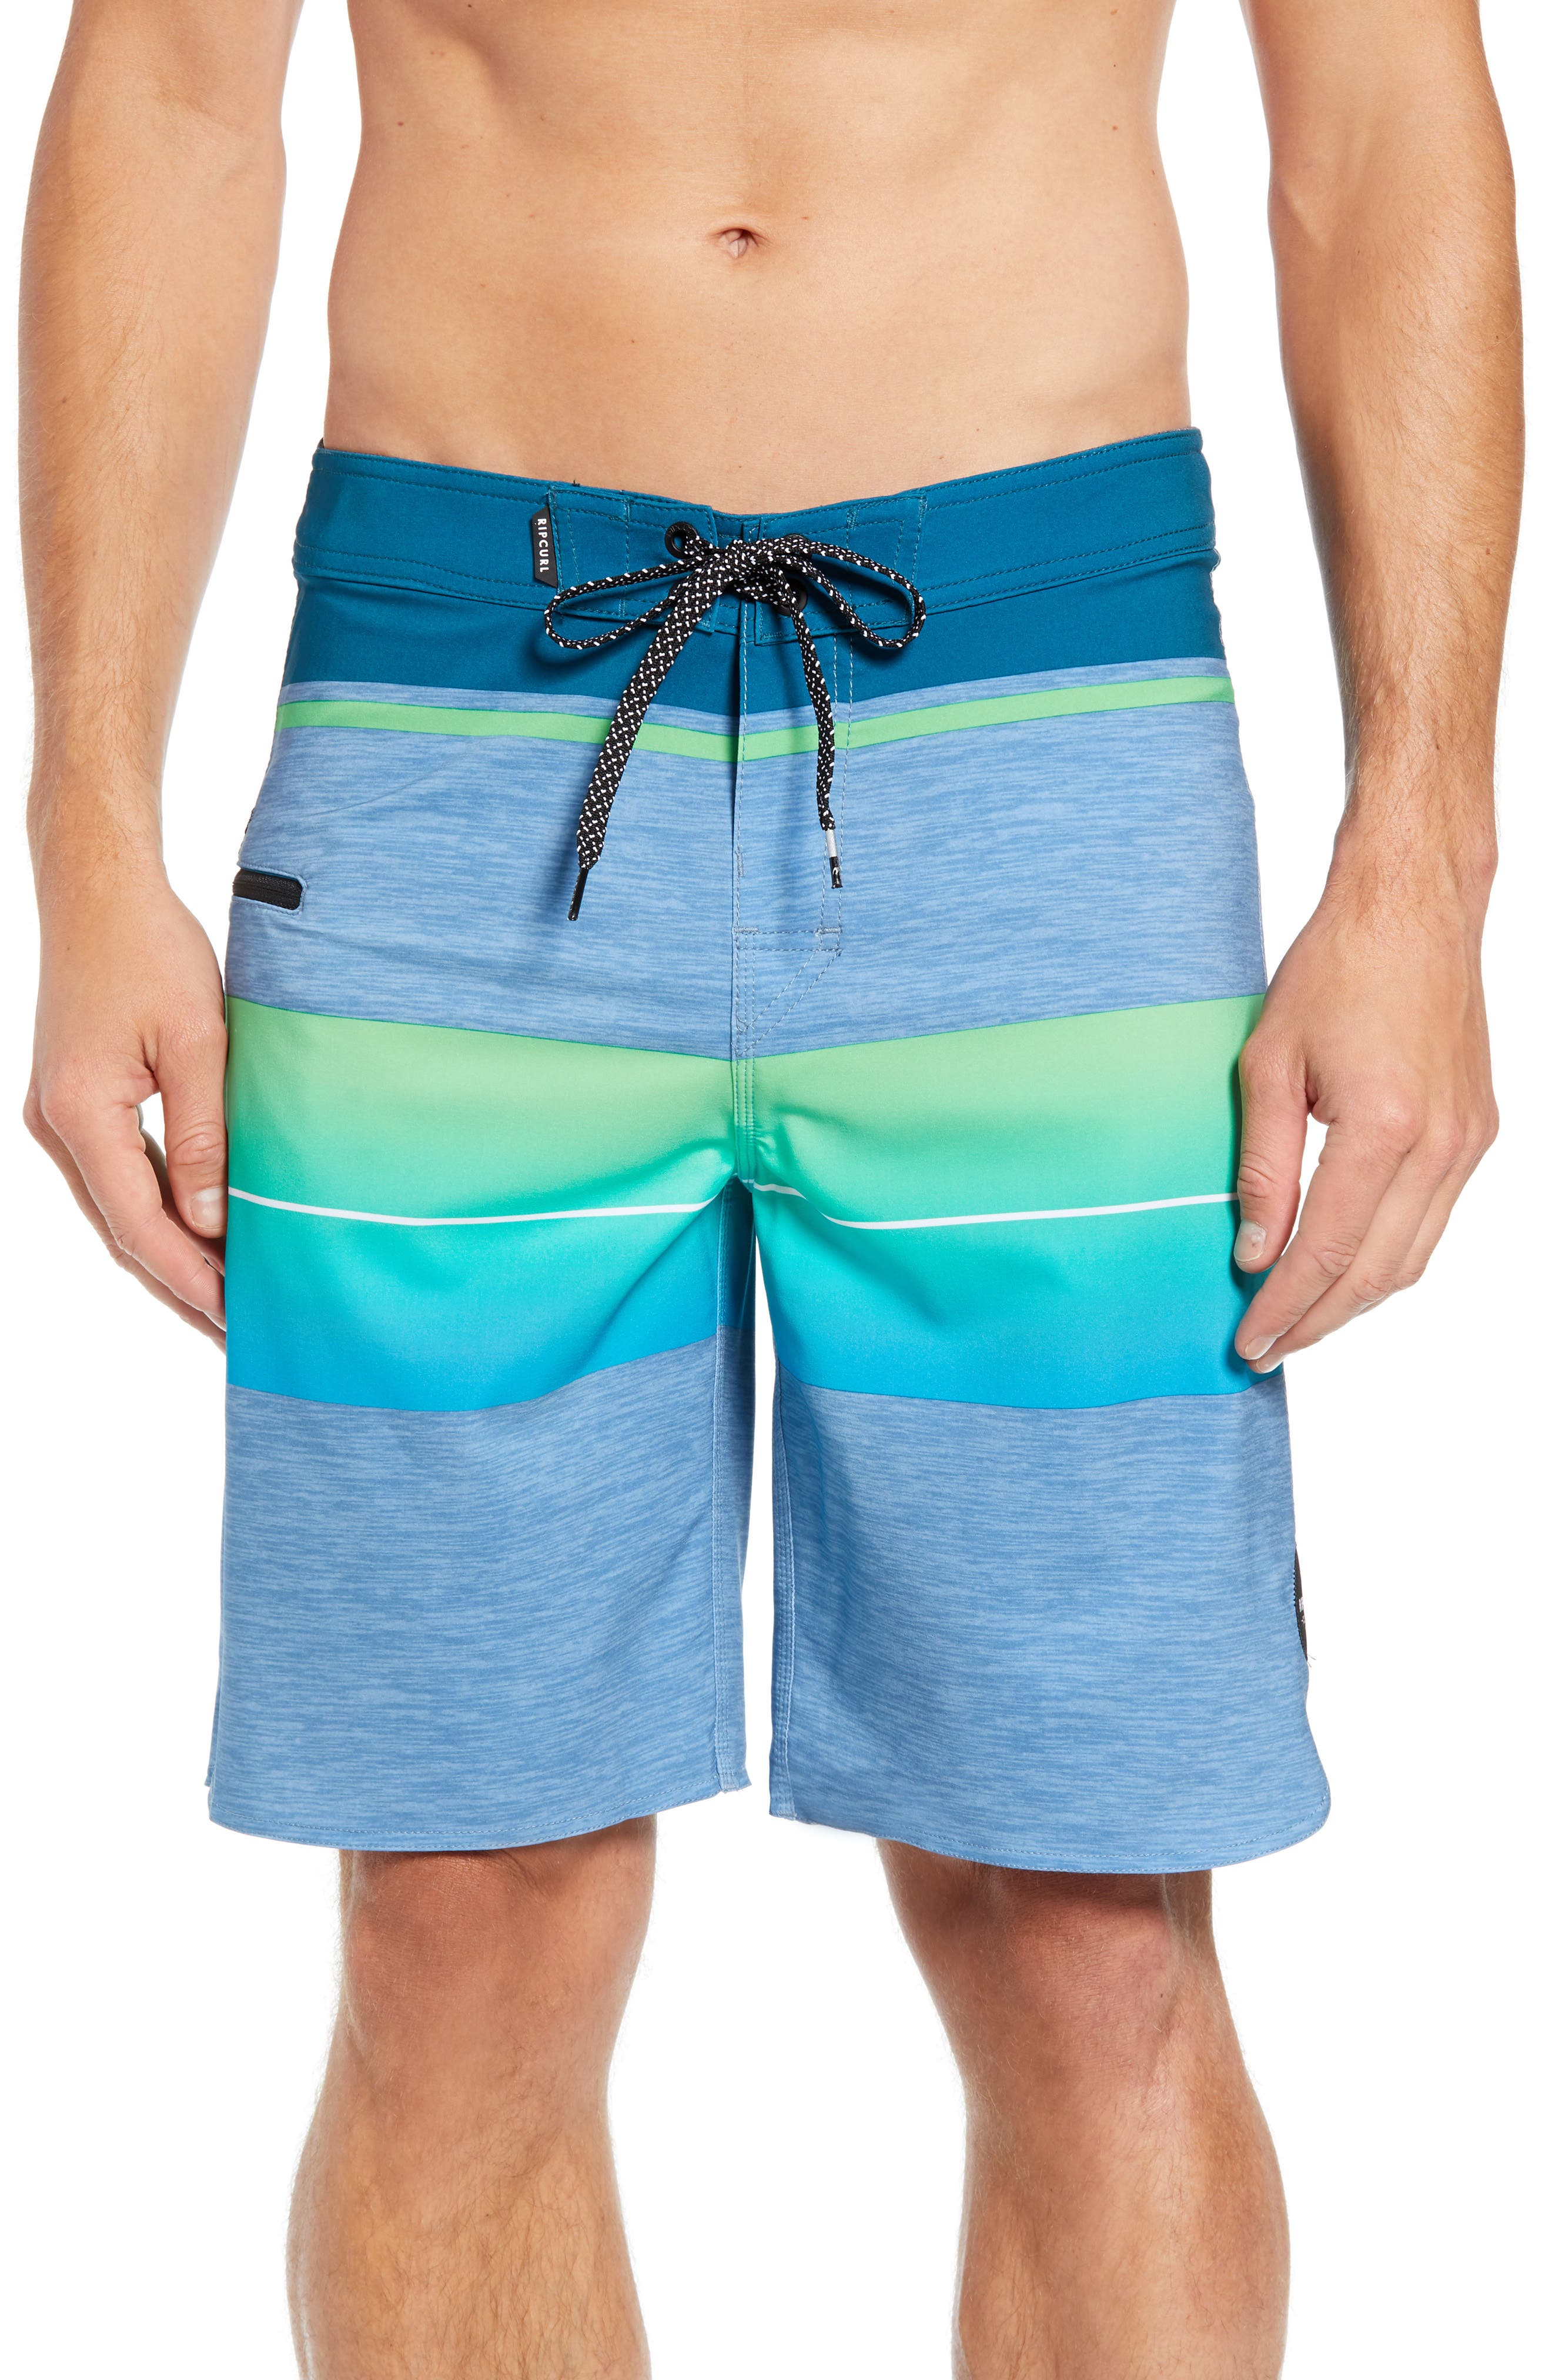 Mirage Eclipse Board Shorts,                         Main,                         color, 300